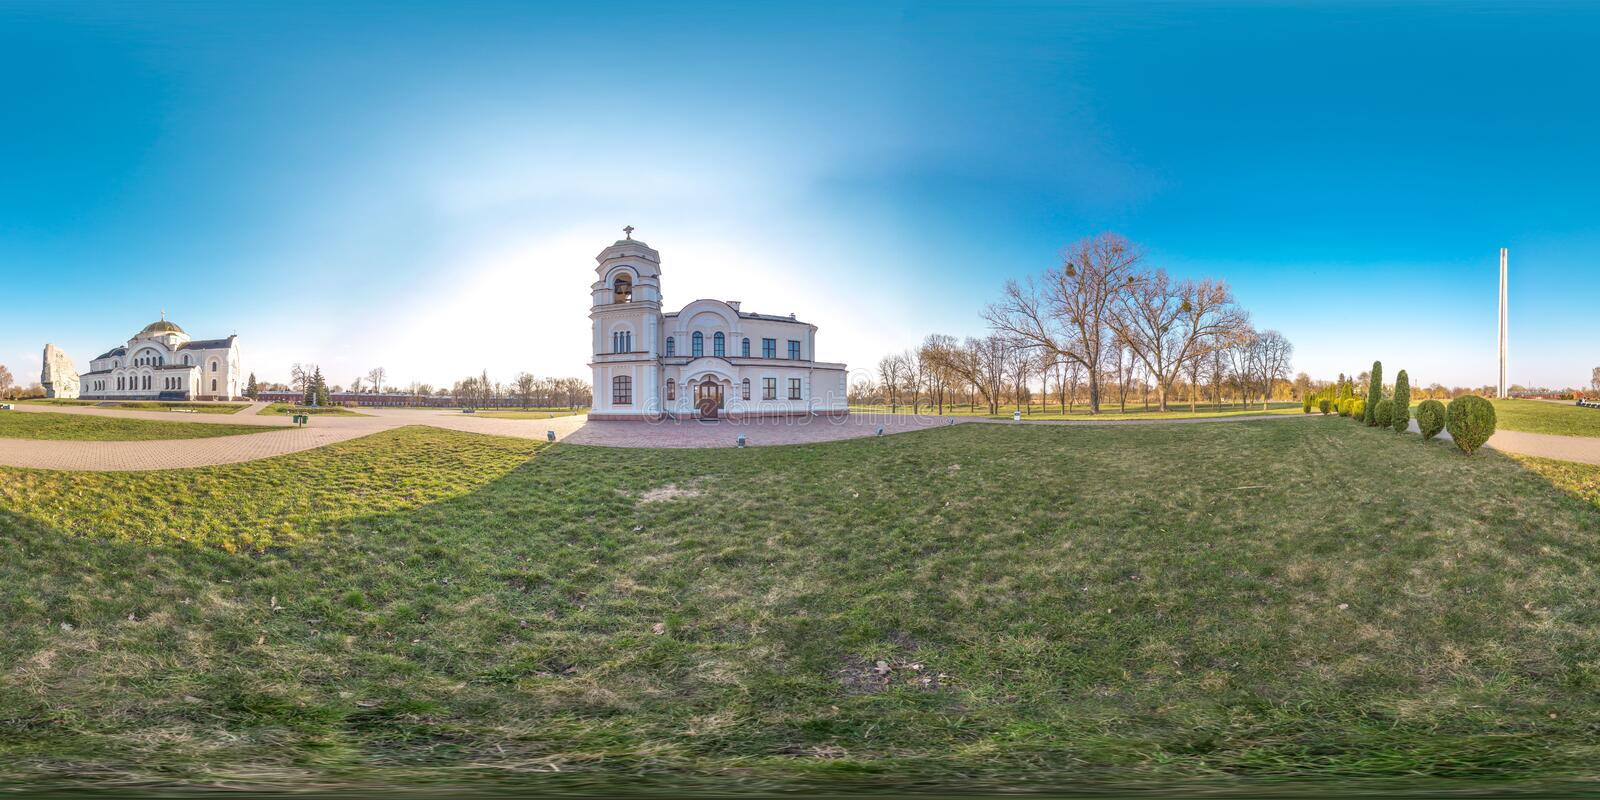 3D spherical panorama with 360 viewing angle. Ready for virtual reality or VR. Full equirectangular projection. Brest fortness. Spring stock photo